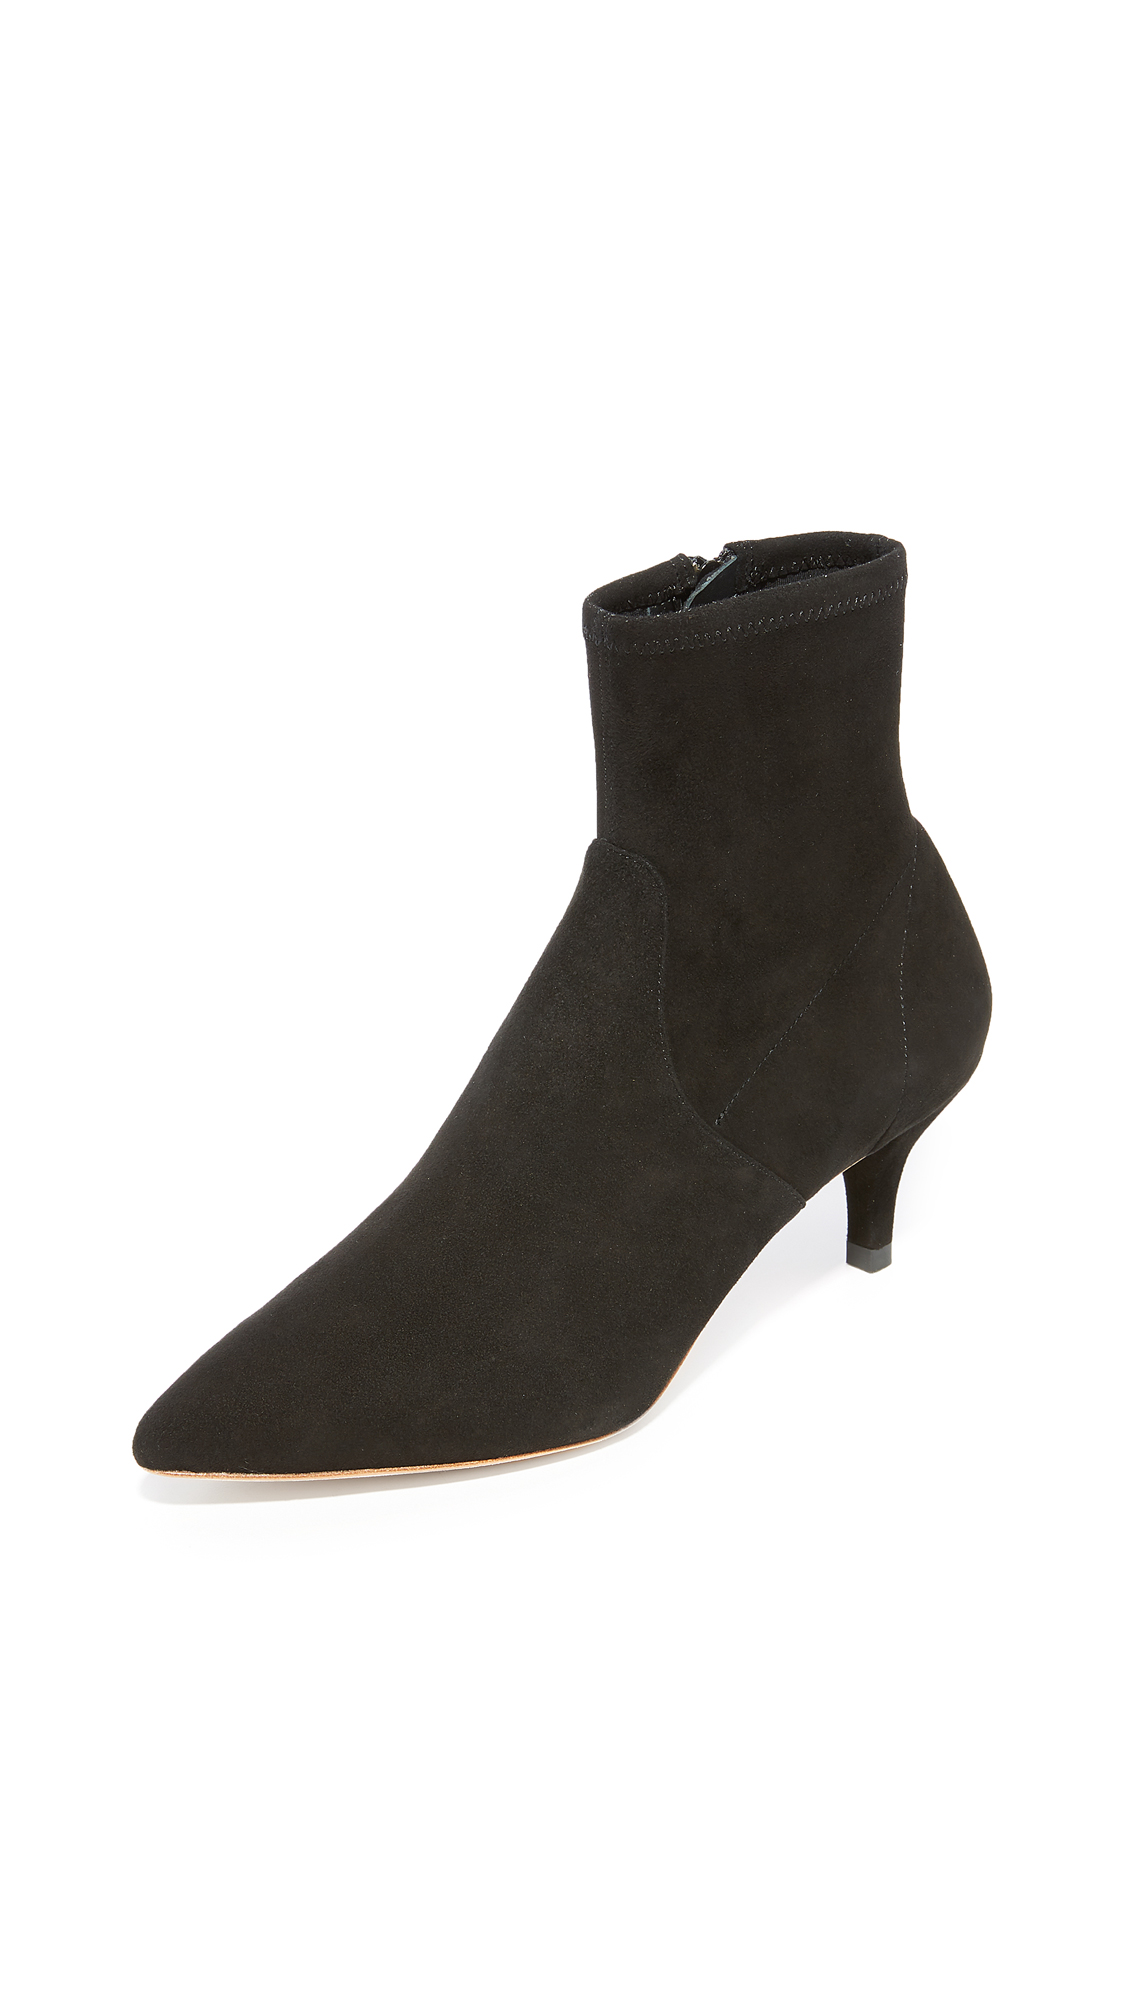 Loeffler Randall Kassidy Stretch Low Heel Booties - Black